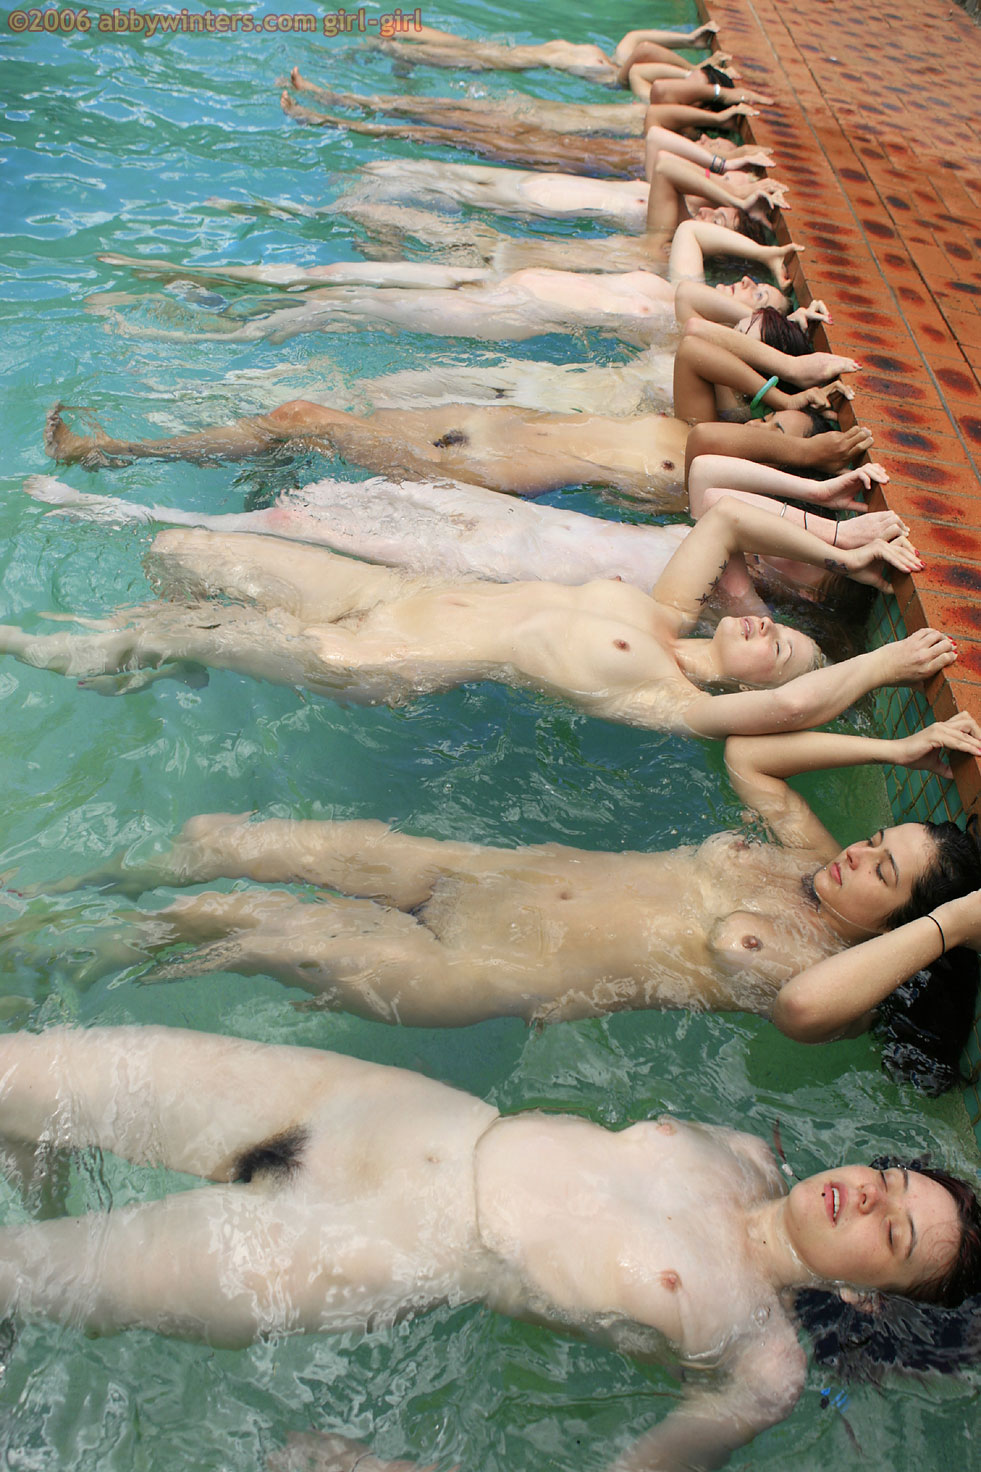 from Alfonso teacher swimming naked image